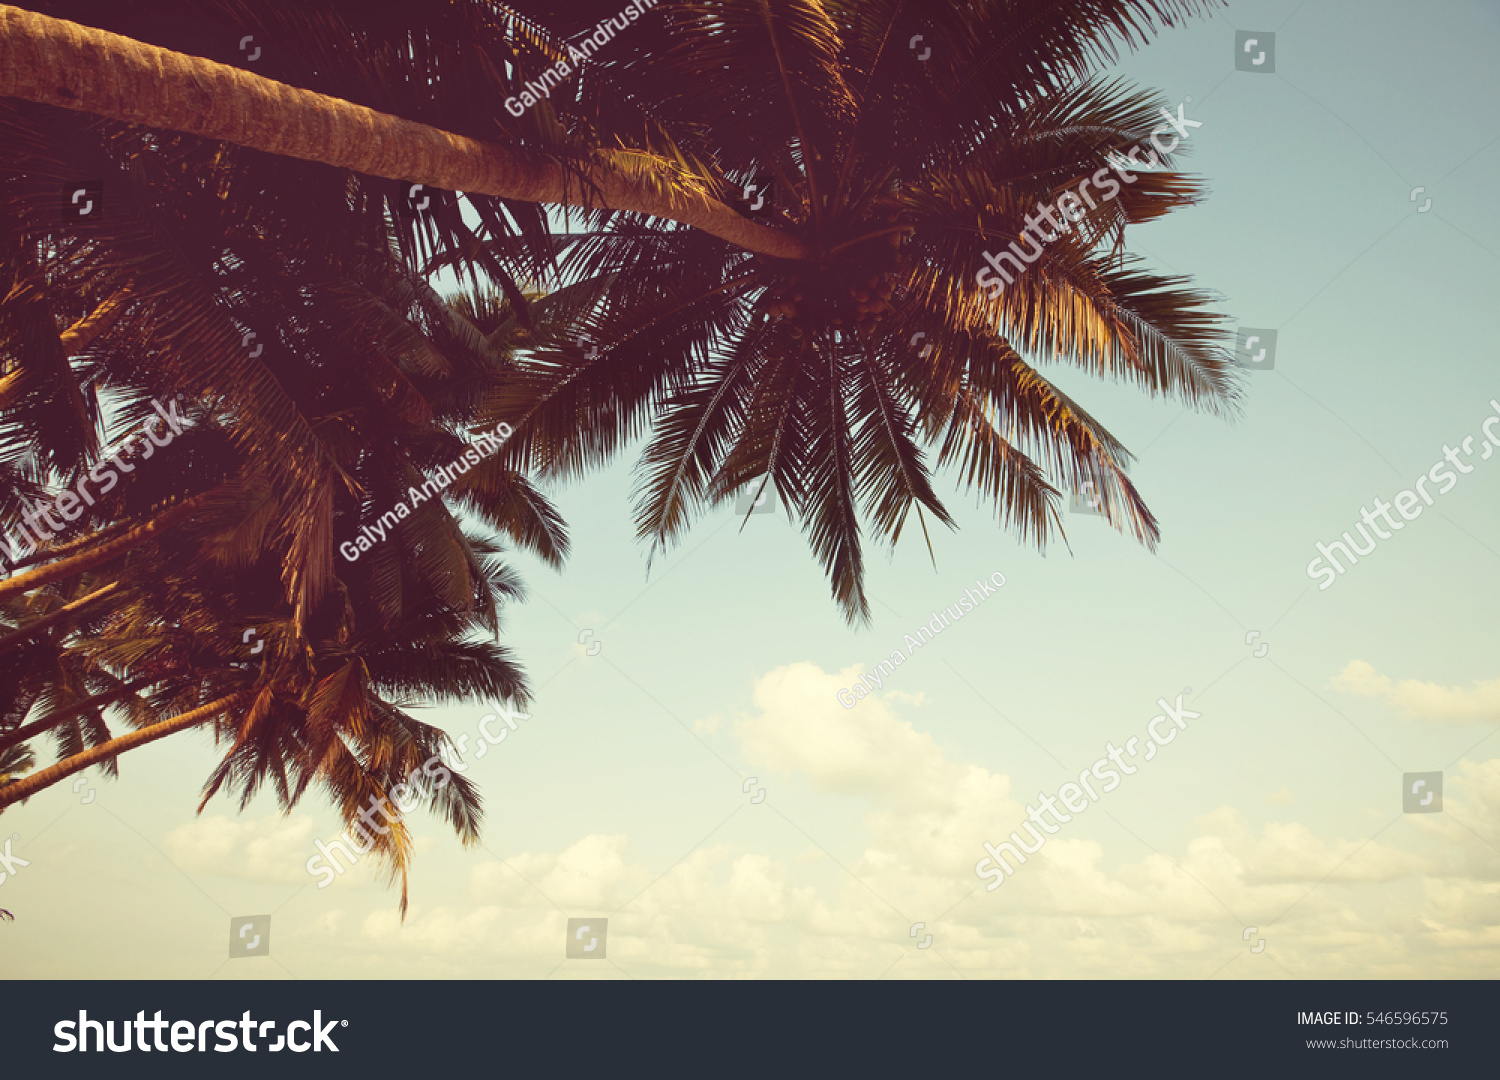 Serenity Tropical Beach Instagram Filter Stock Photo (Edit Now